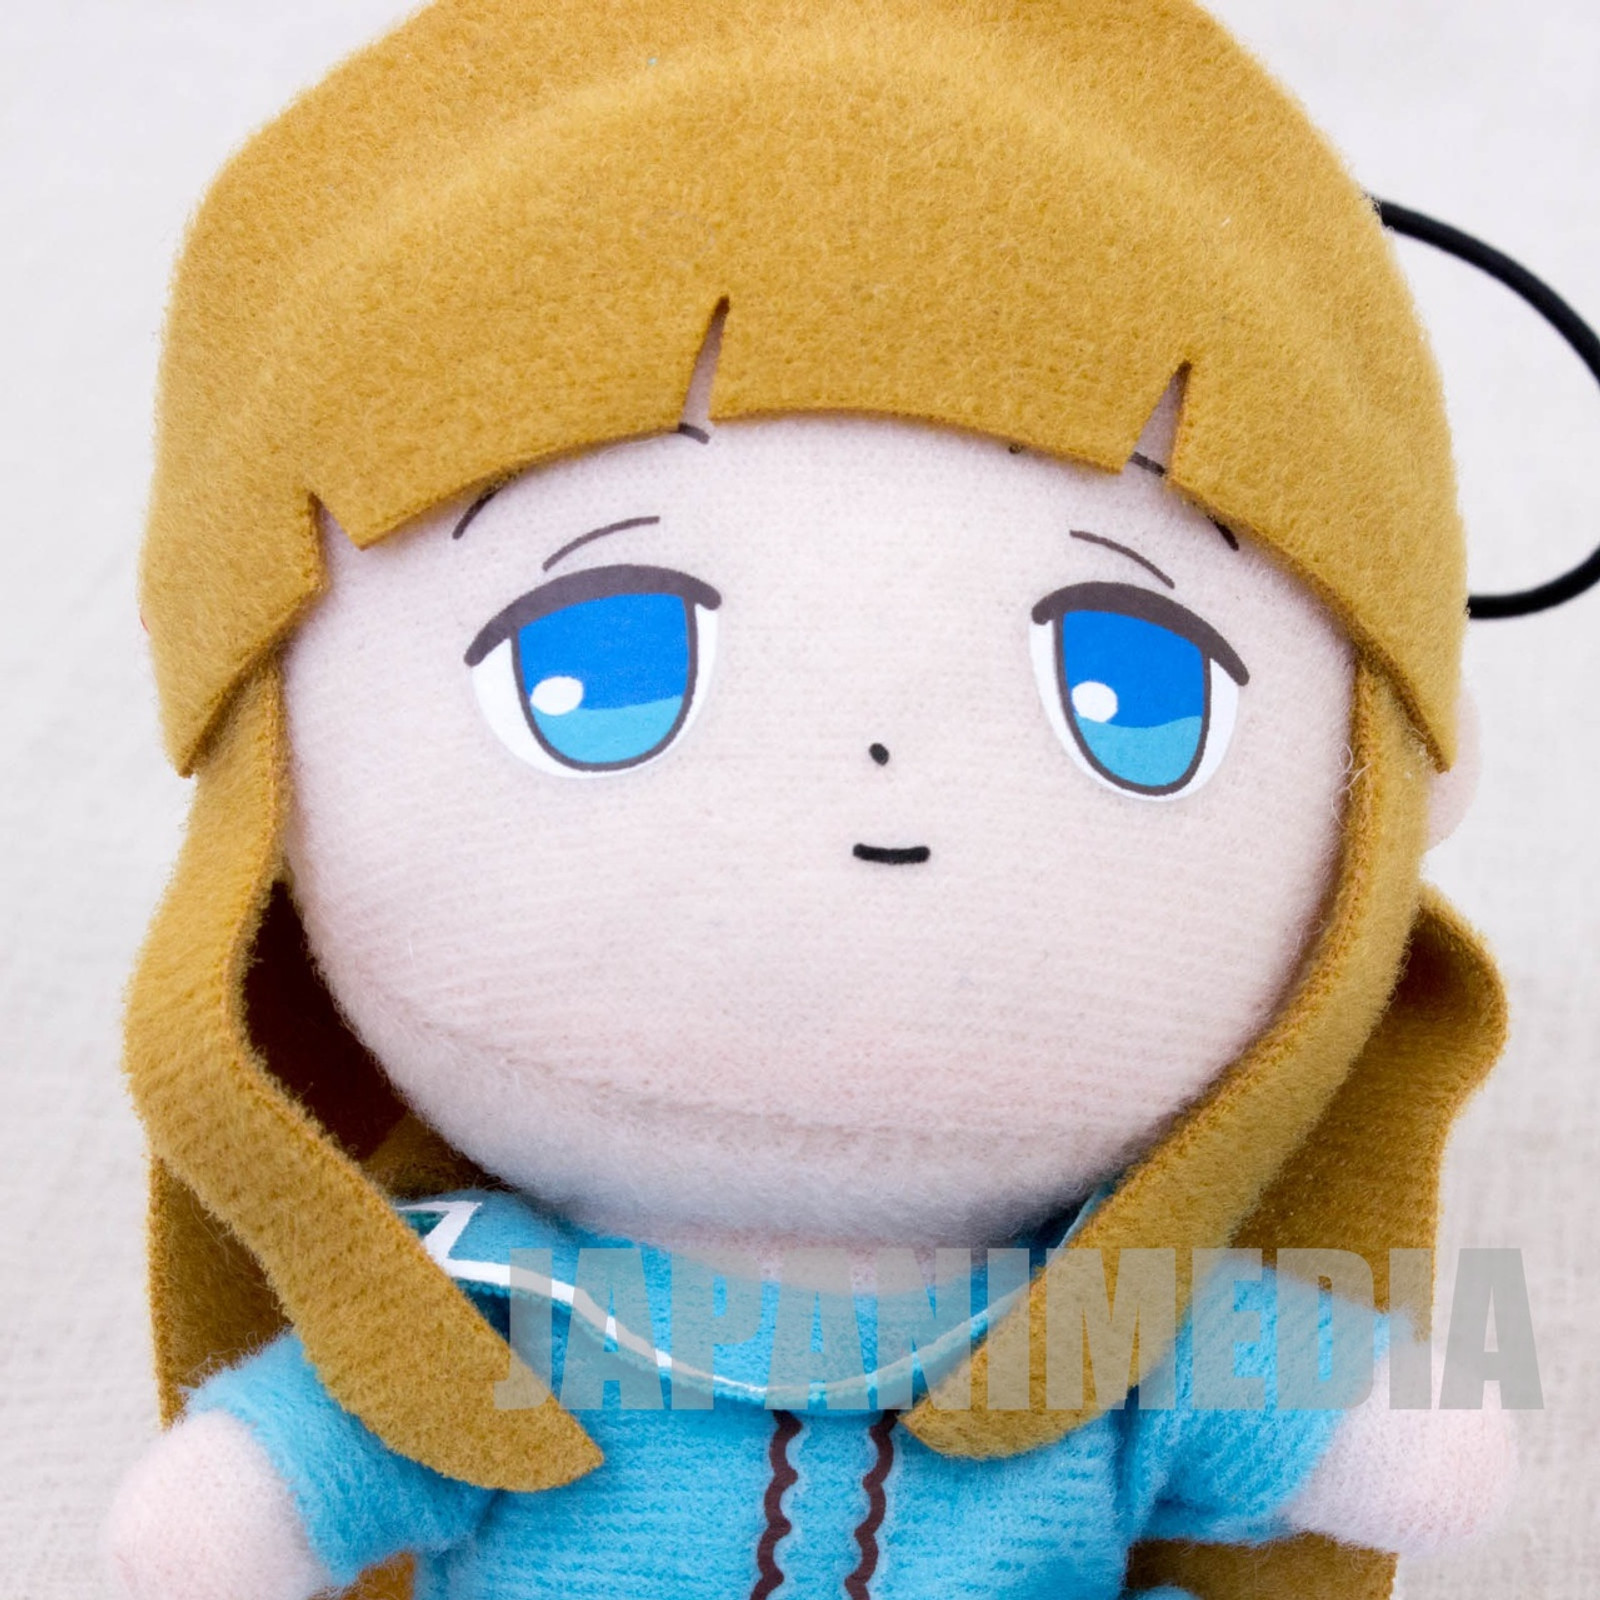 Magical Circle Guru Guru JuJu Mini Plush Doll Strap JAPAN ANIME MANGA